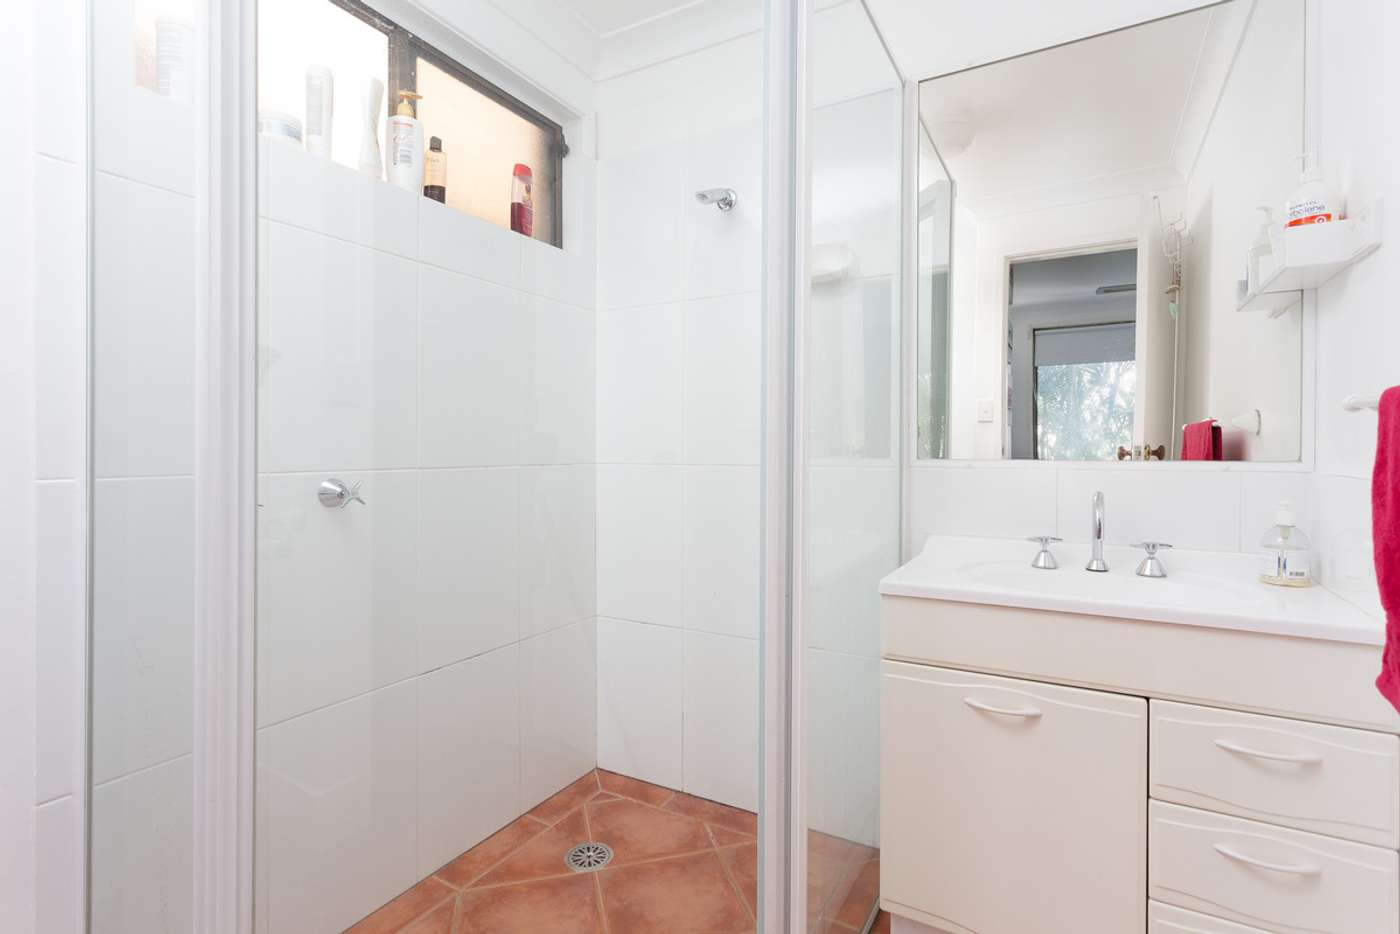 Sixth view of Homely house listing, 9 Lewis Street, Old Bar NSW 2430